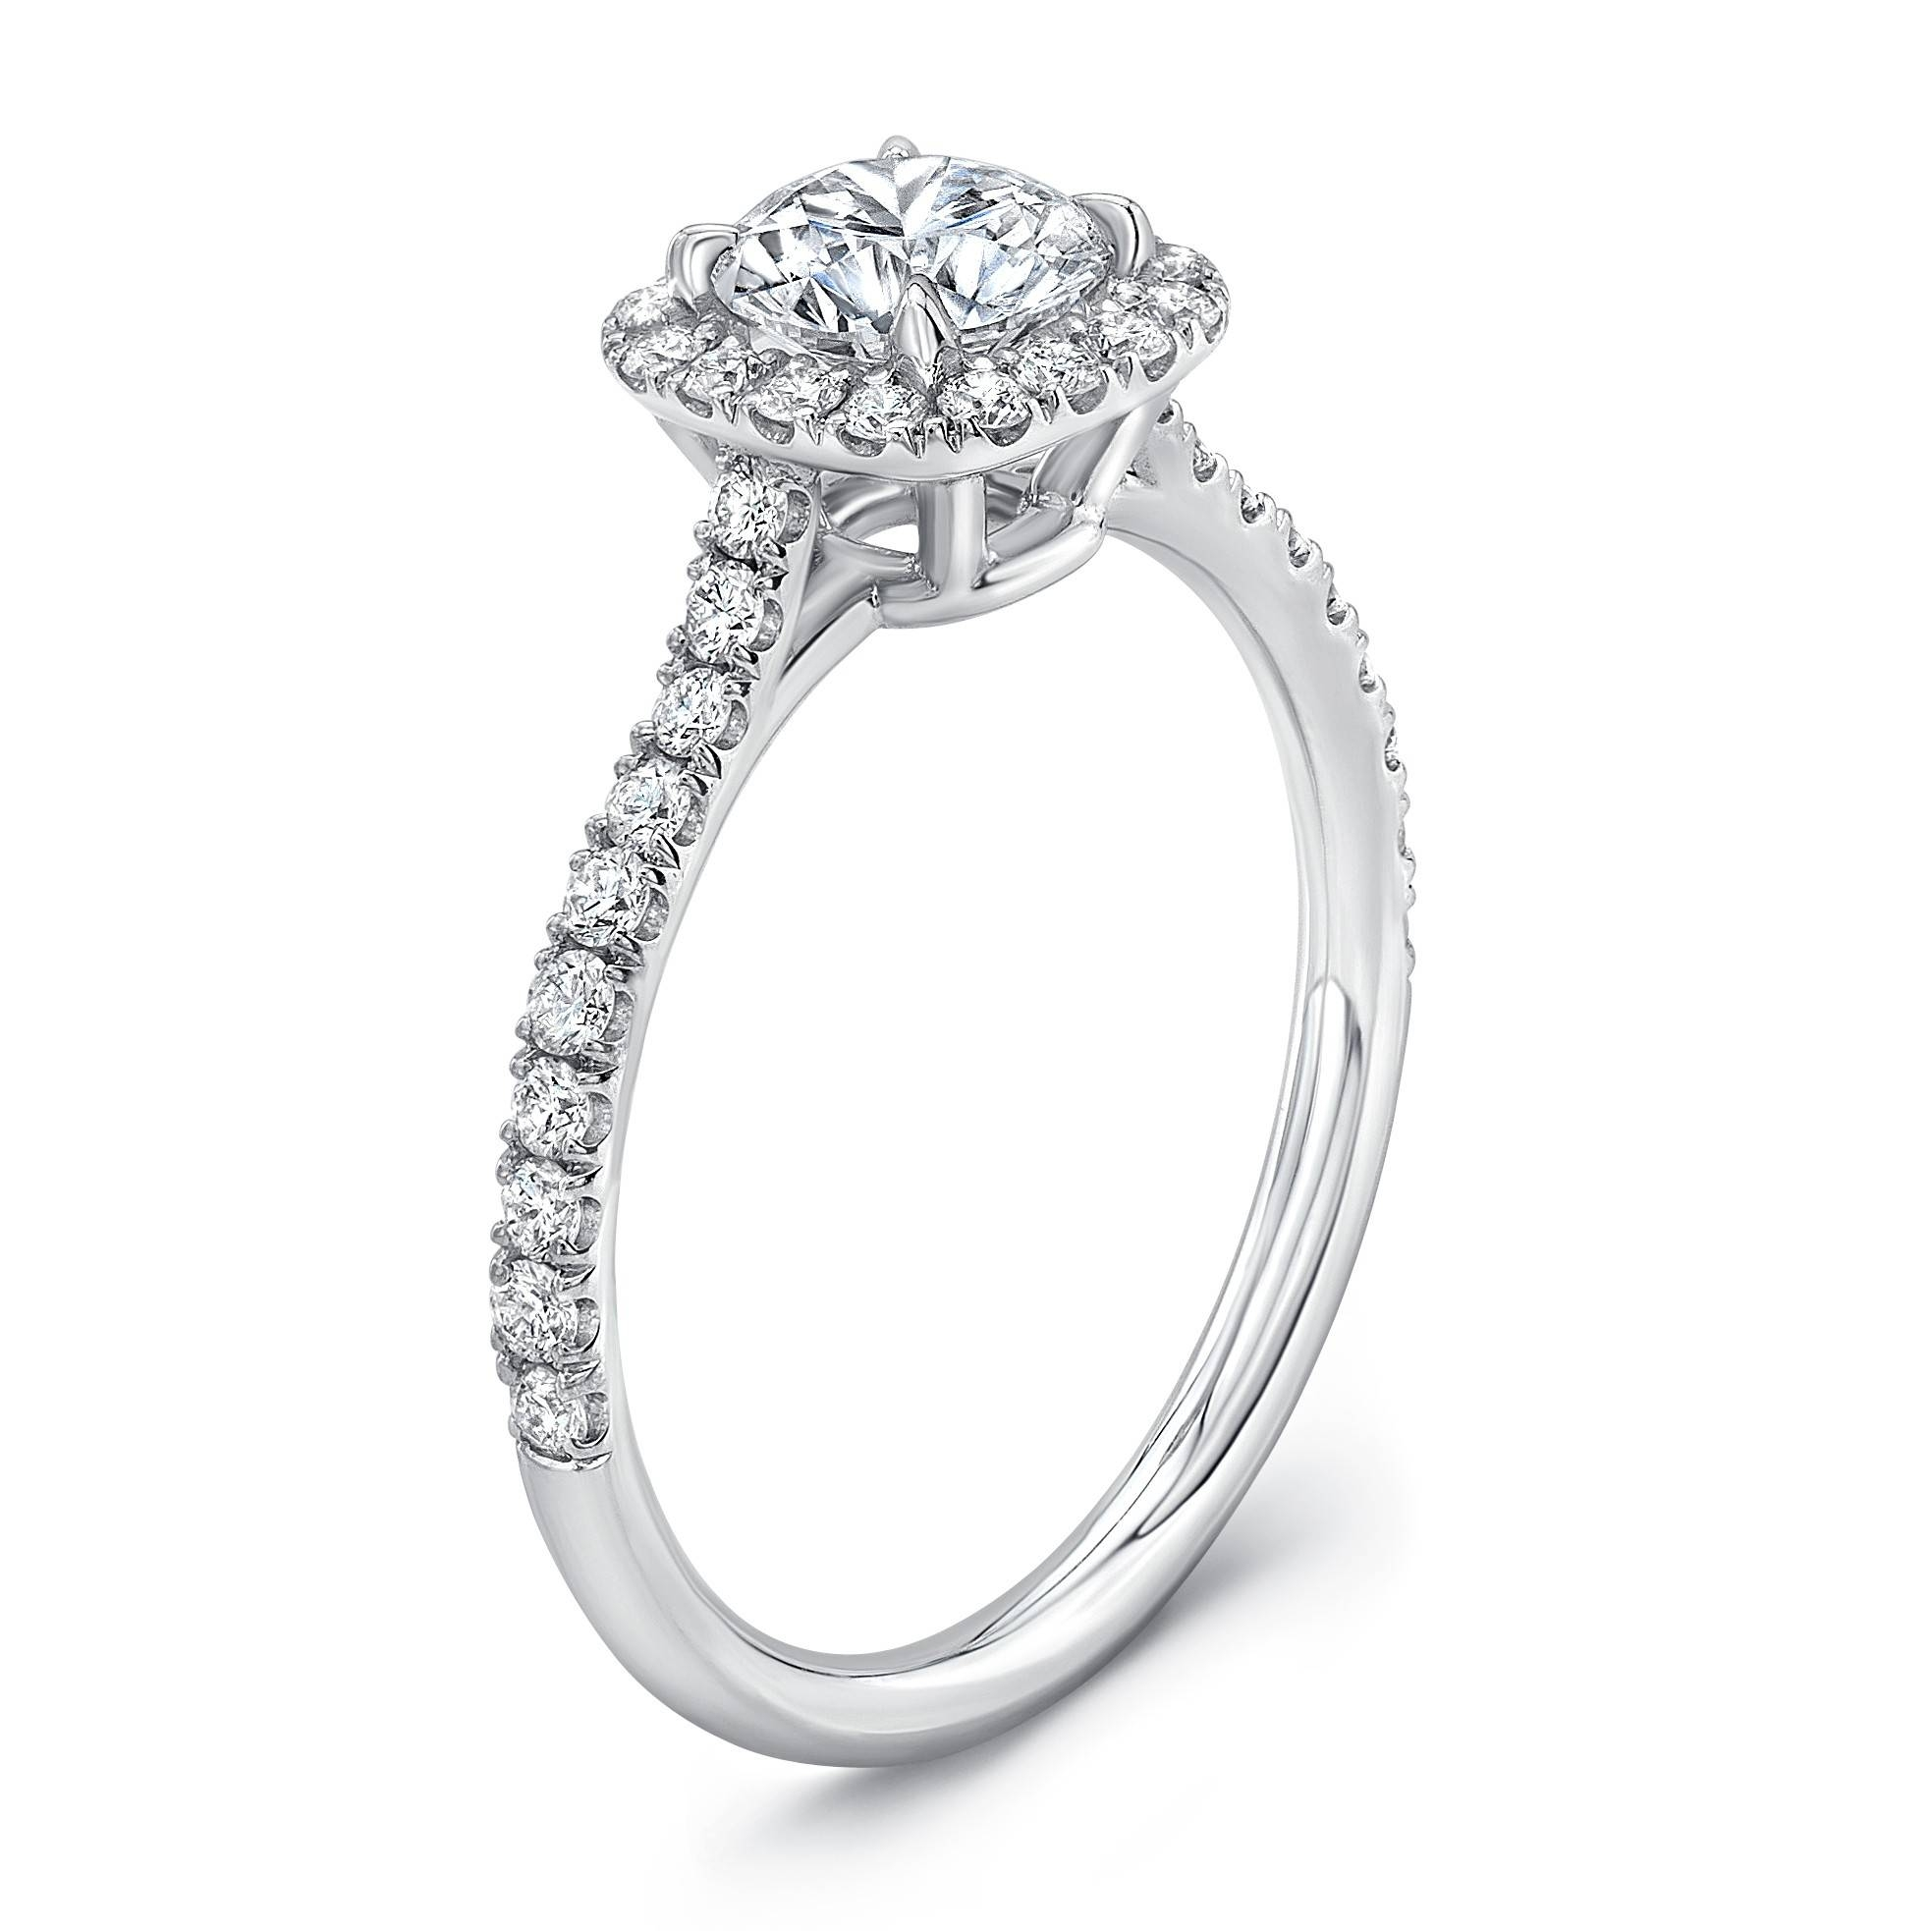 Preset 0.70 Carat G/si1 Round Center, Square Halo Diamond With Regard To Pre Set Engagement Rings (Gallery 3 of 15)